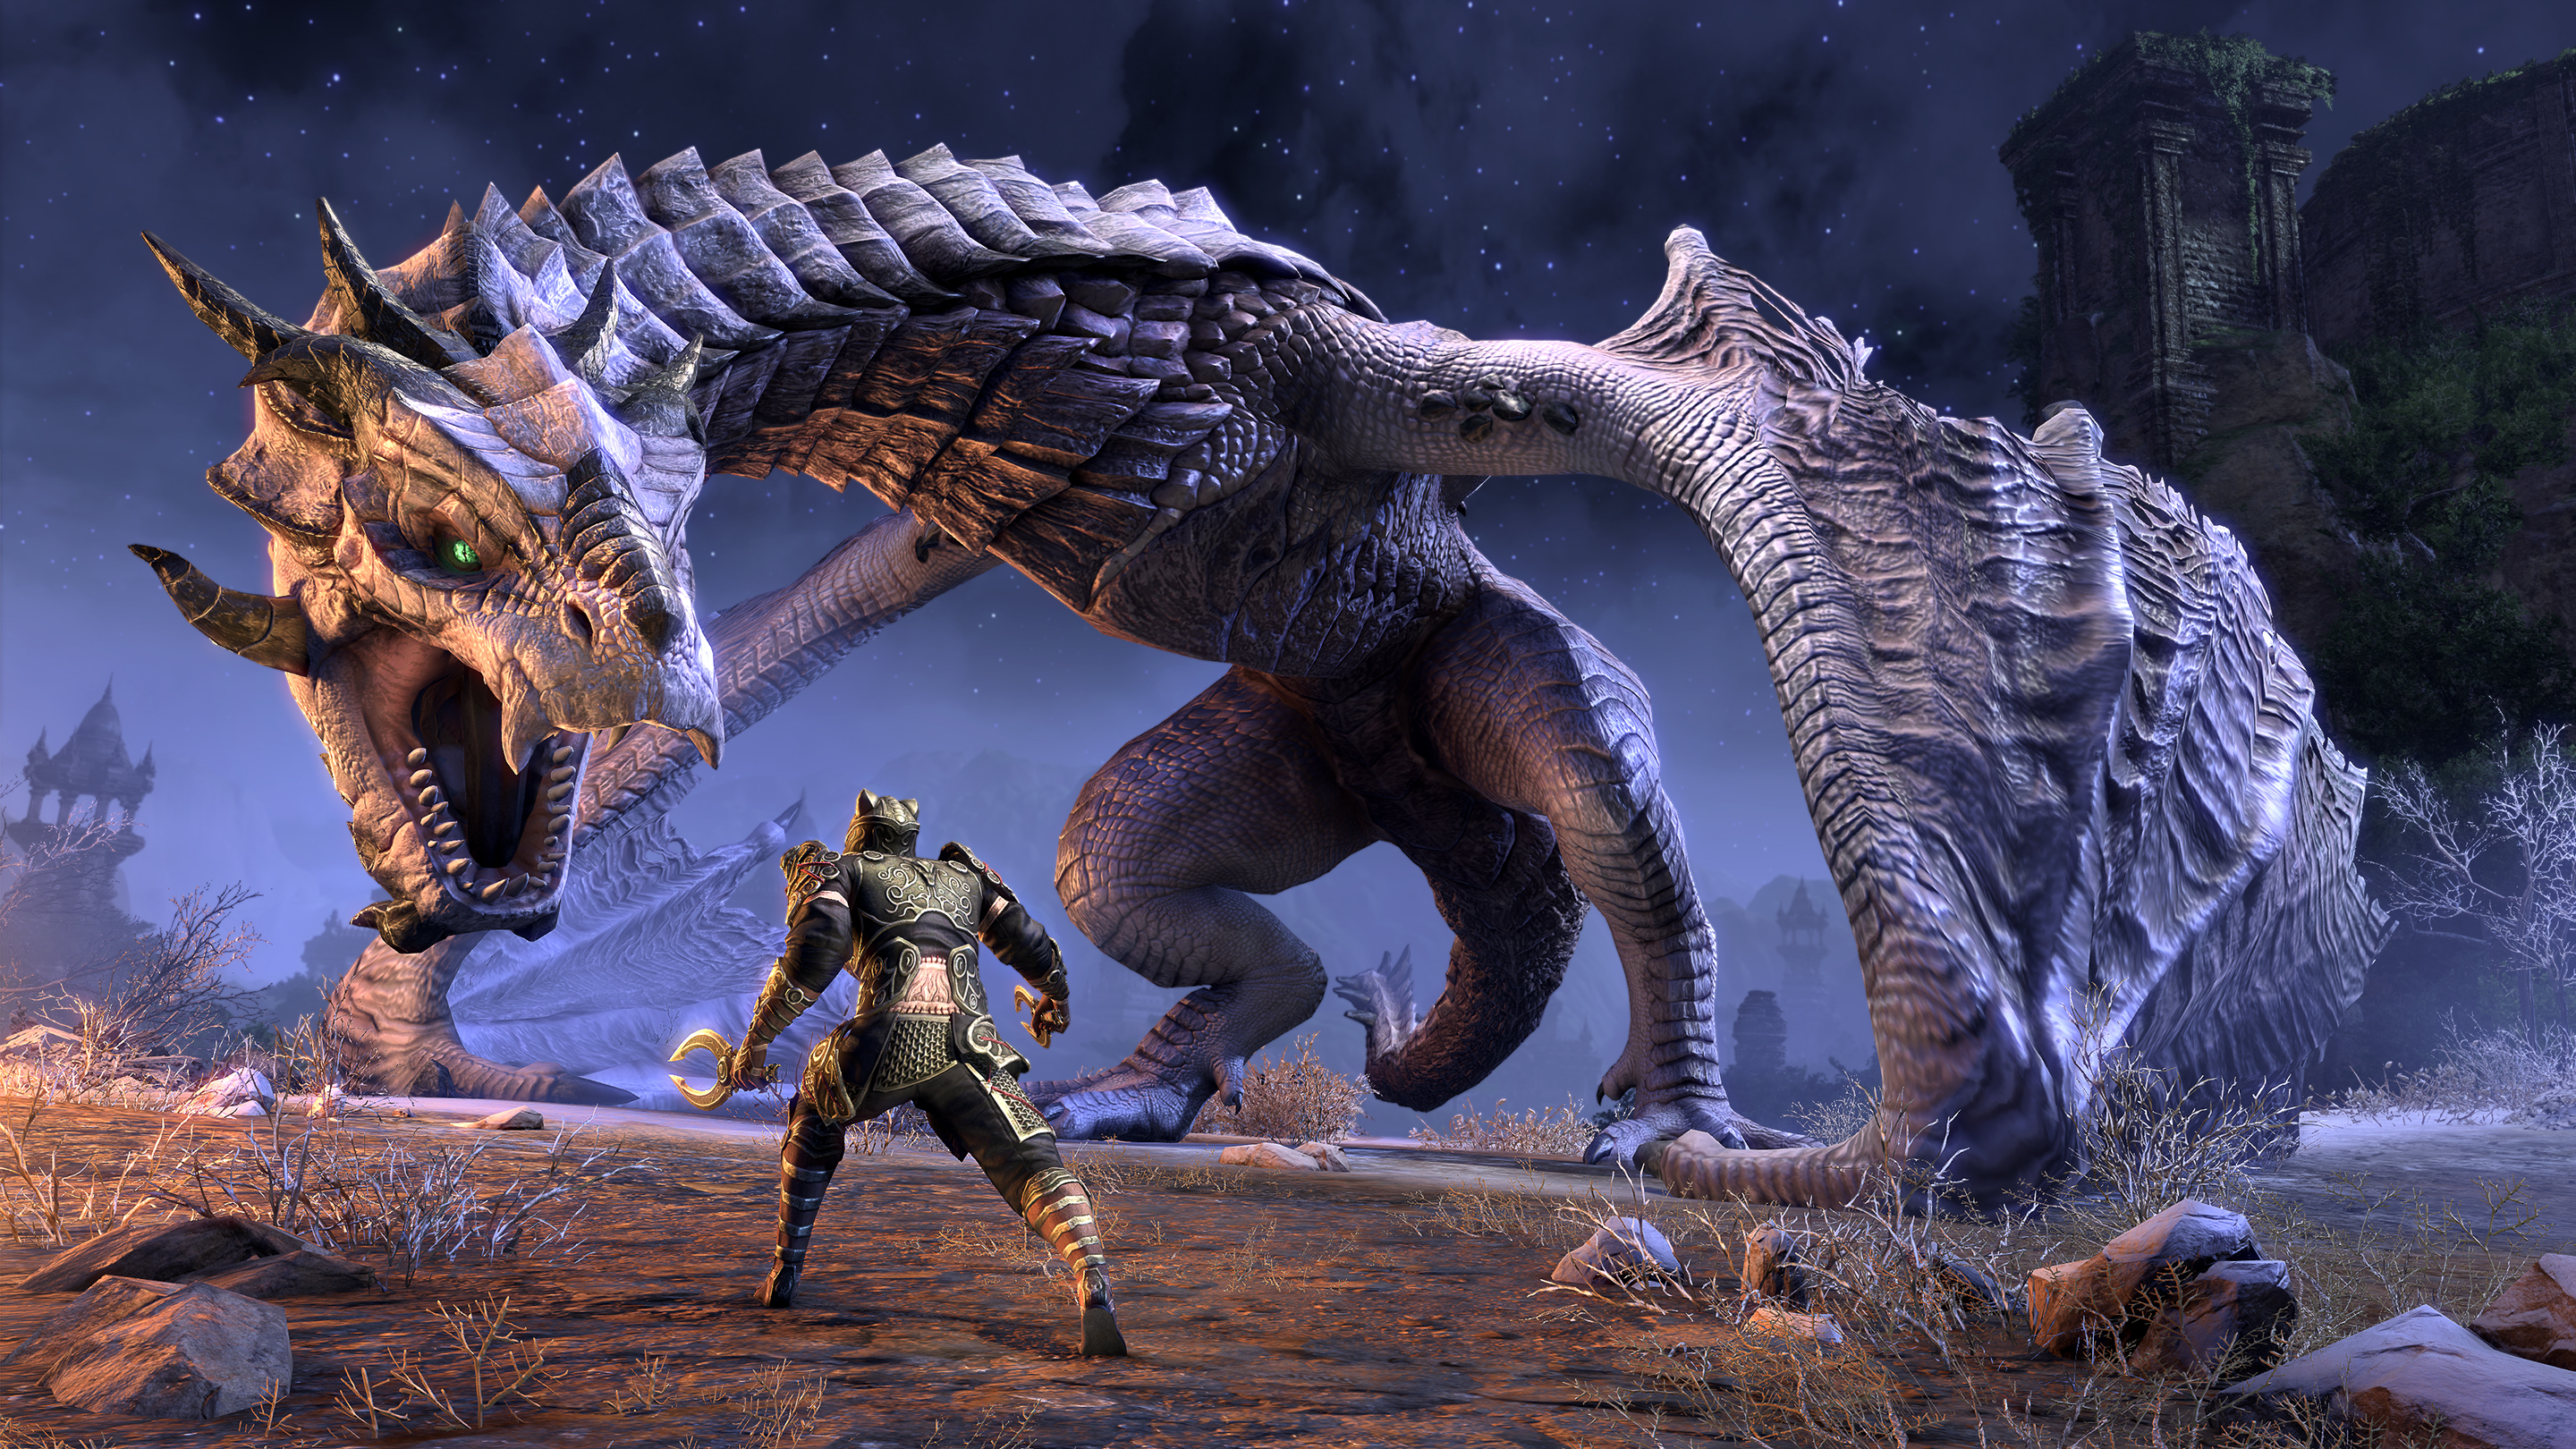 The Elder Scrolls Online: Elsweyr's dragons aren't nearly as